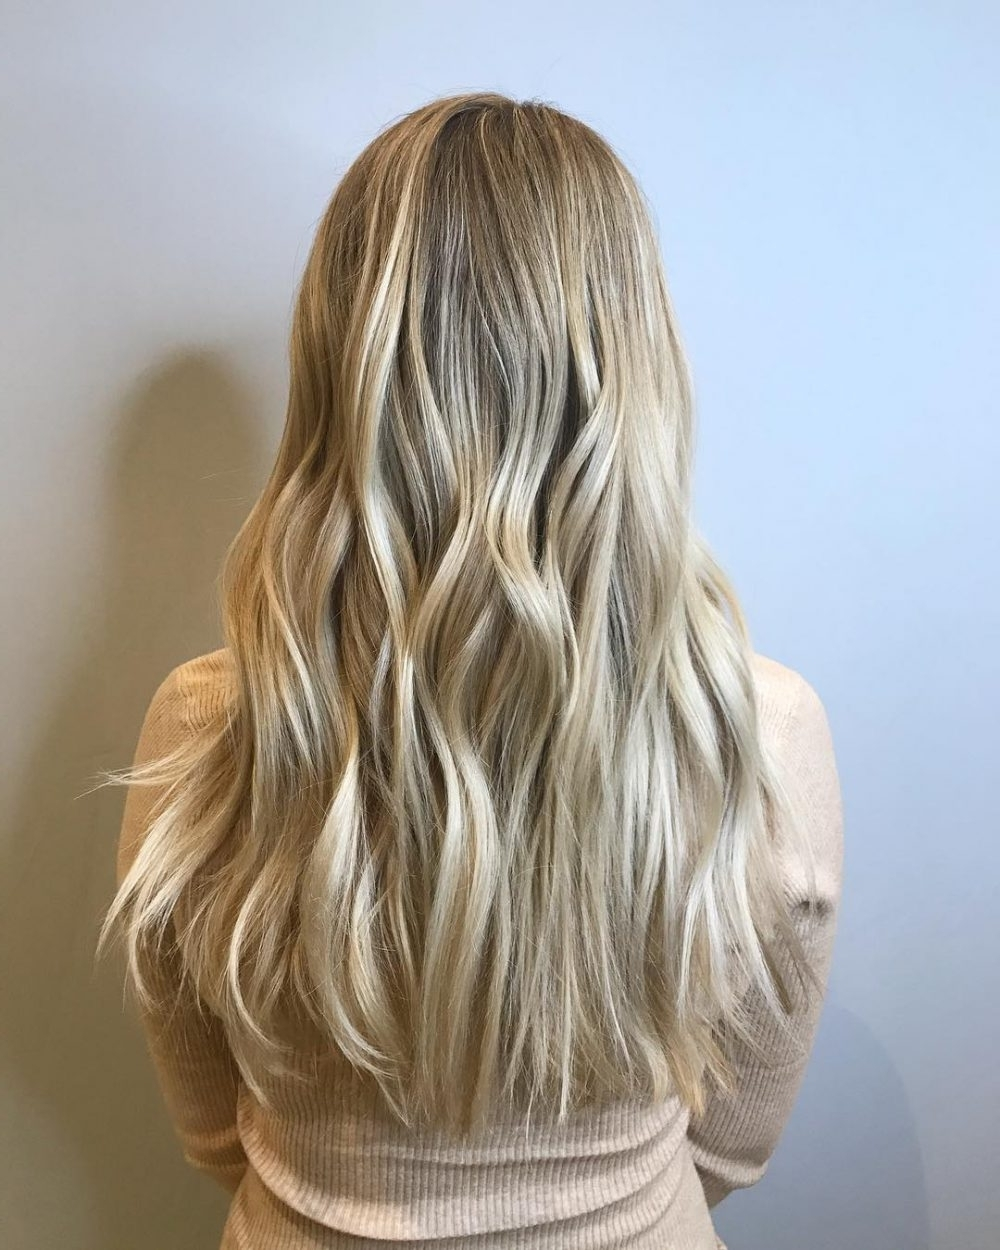 30 Top Long Blonde Hair Ideas – Bombshell Alert! Throughout Well Liked Straight Sandy Blonde Layers (View 2 of 20)